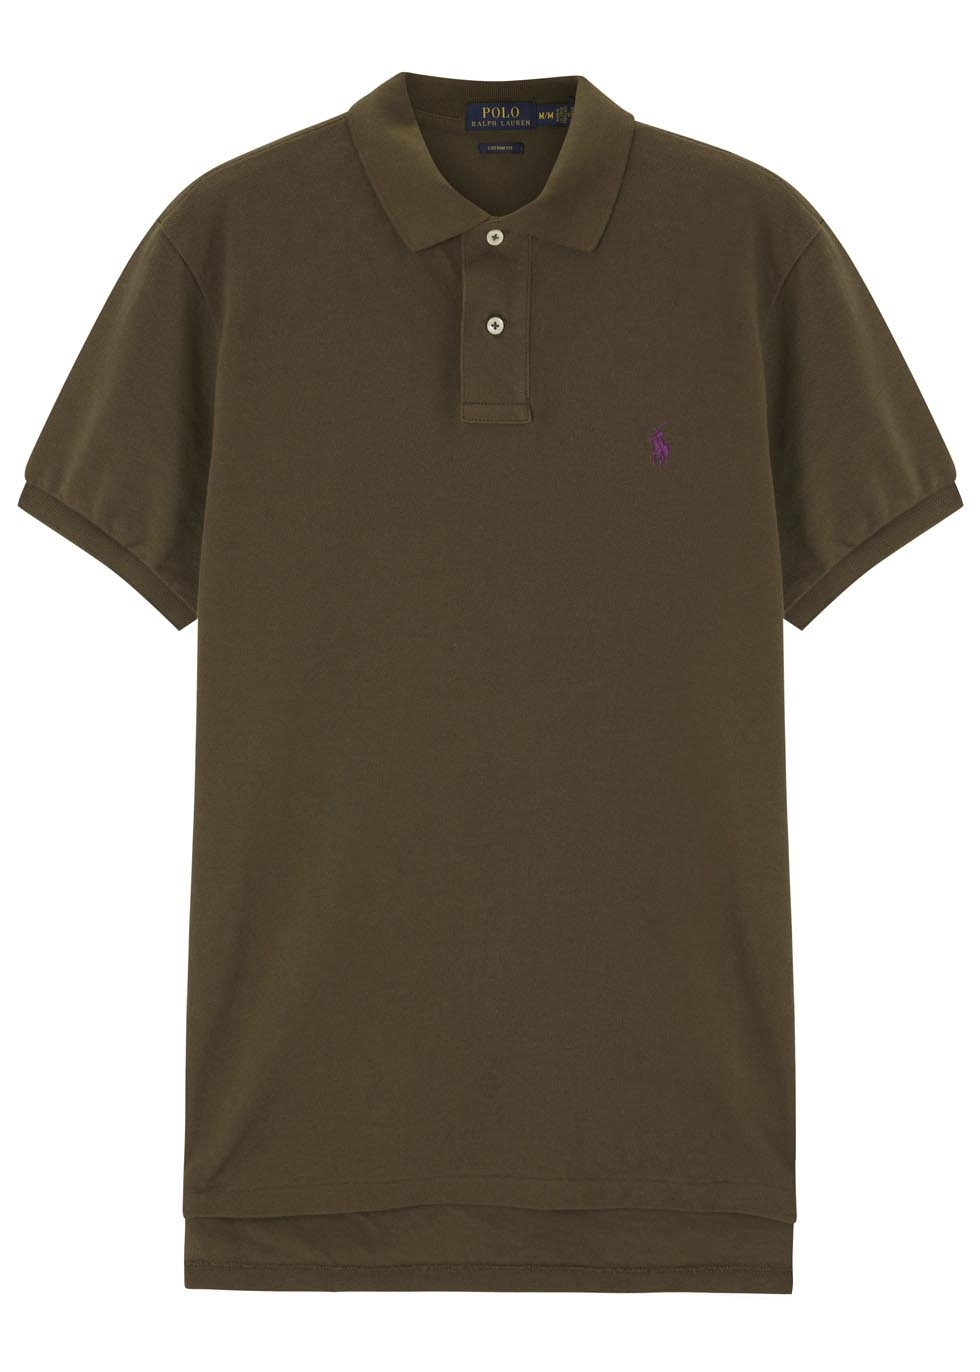 22651c241f8f Polo Ralph Lauren Olive Piqué Cotton Polo Shirt in Green for Men - Lyst